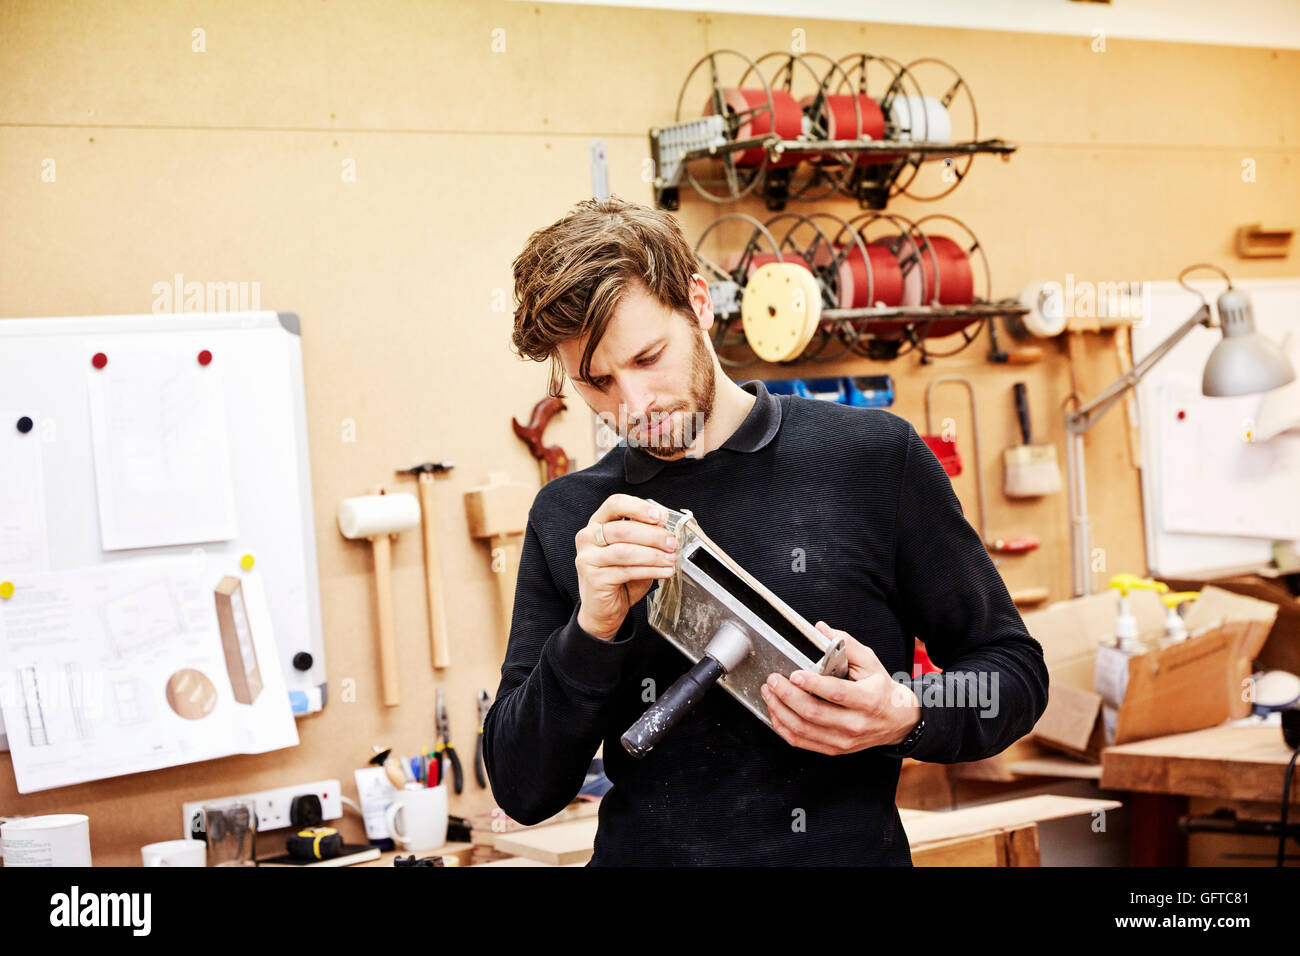 A furniture workshop  A young man holding an object and examining it closely - Stock Image